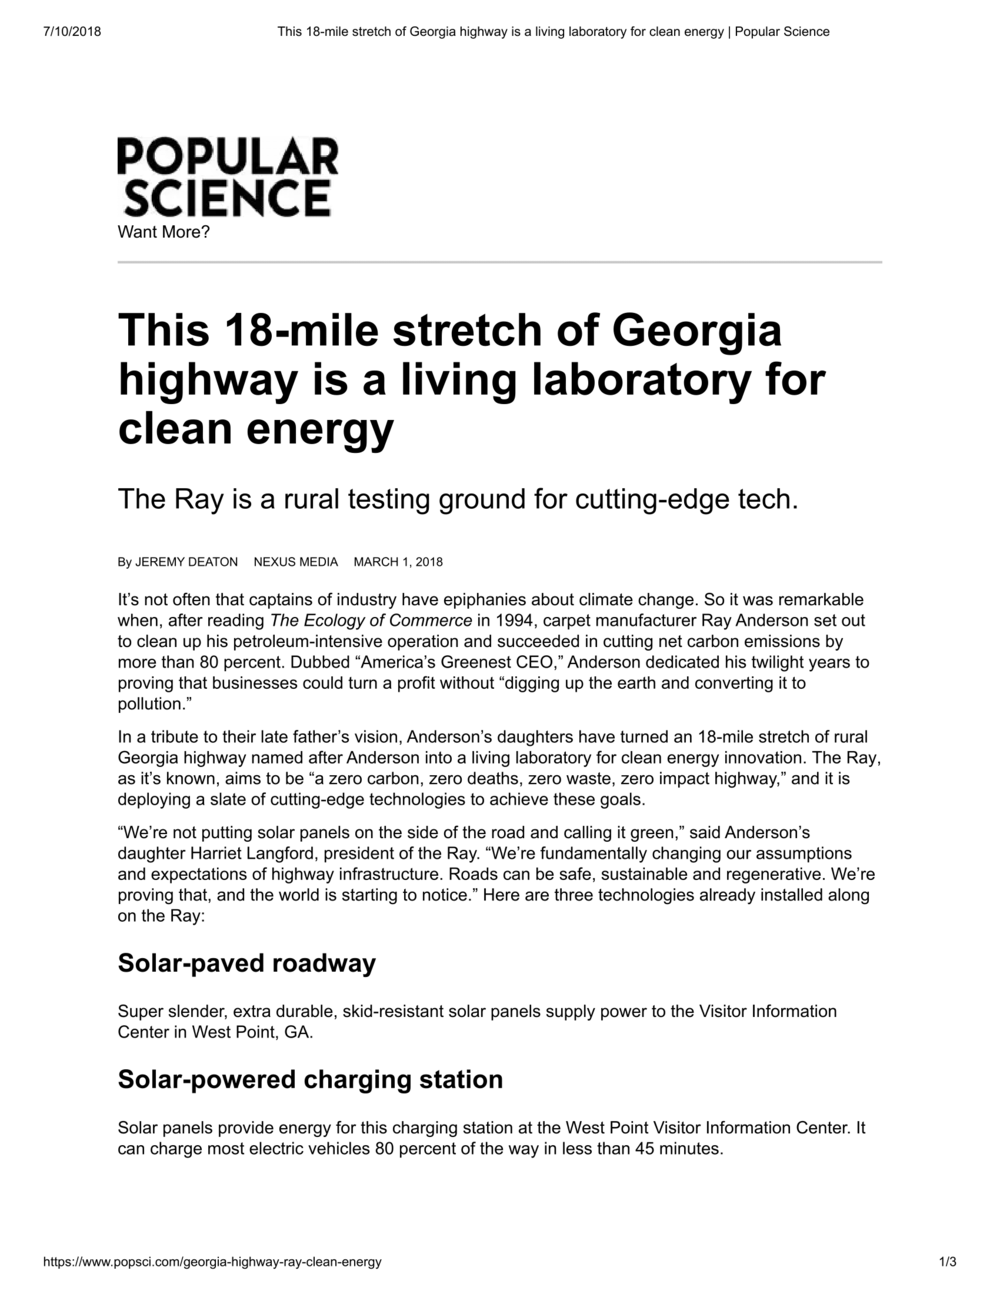 This 18-mile stretch of Georgia highway is a living laboratory for clean energy _ Popular Science-1.png